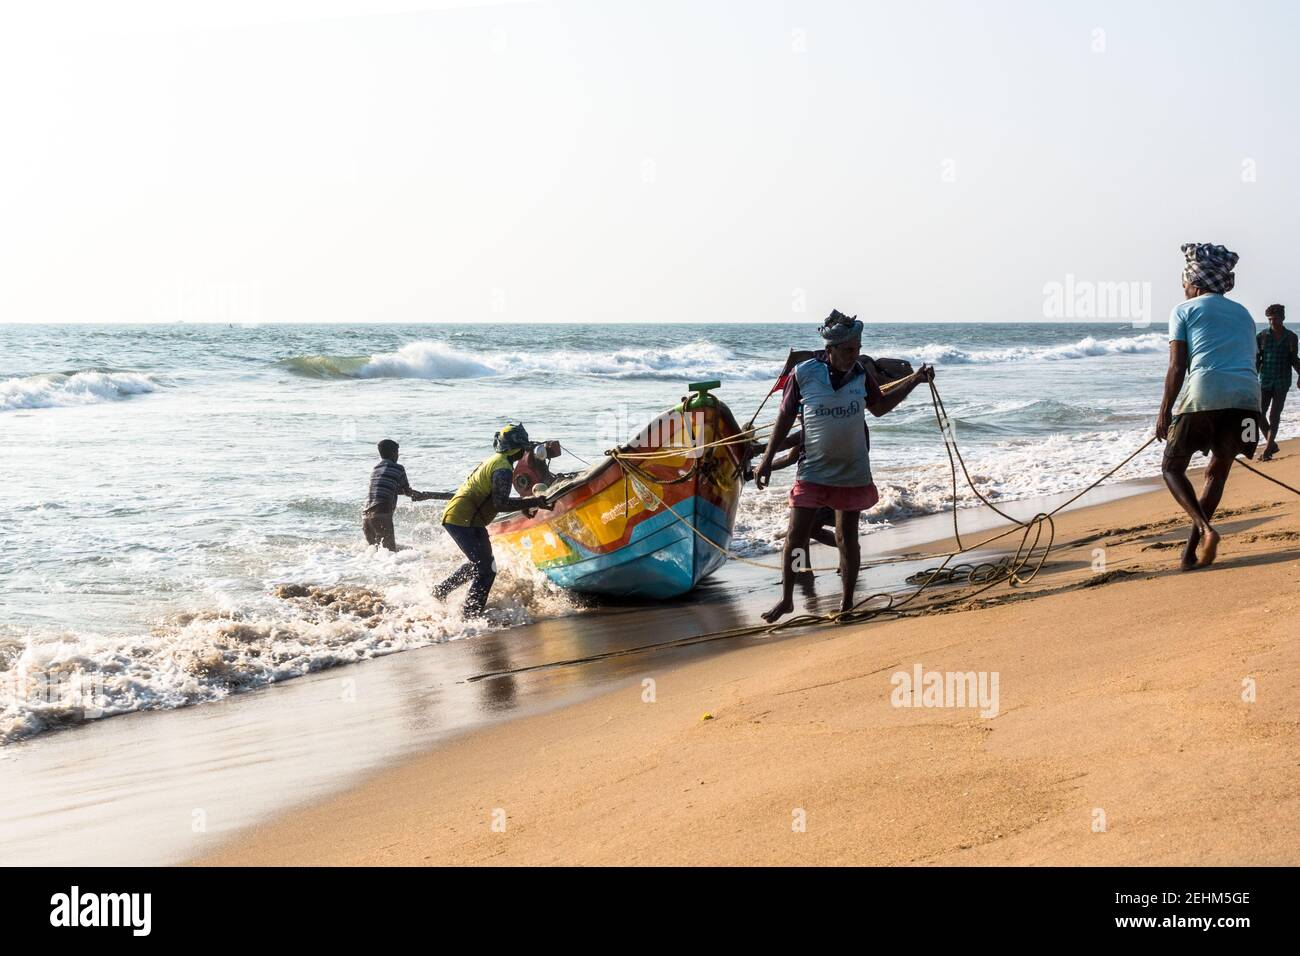 fisherman-pushing-boat-to-land-from-sea-after-returning-from-the-day-work-2EHM5GE.jpg